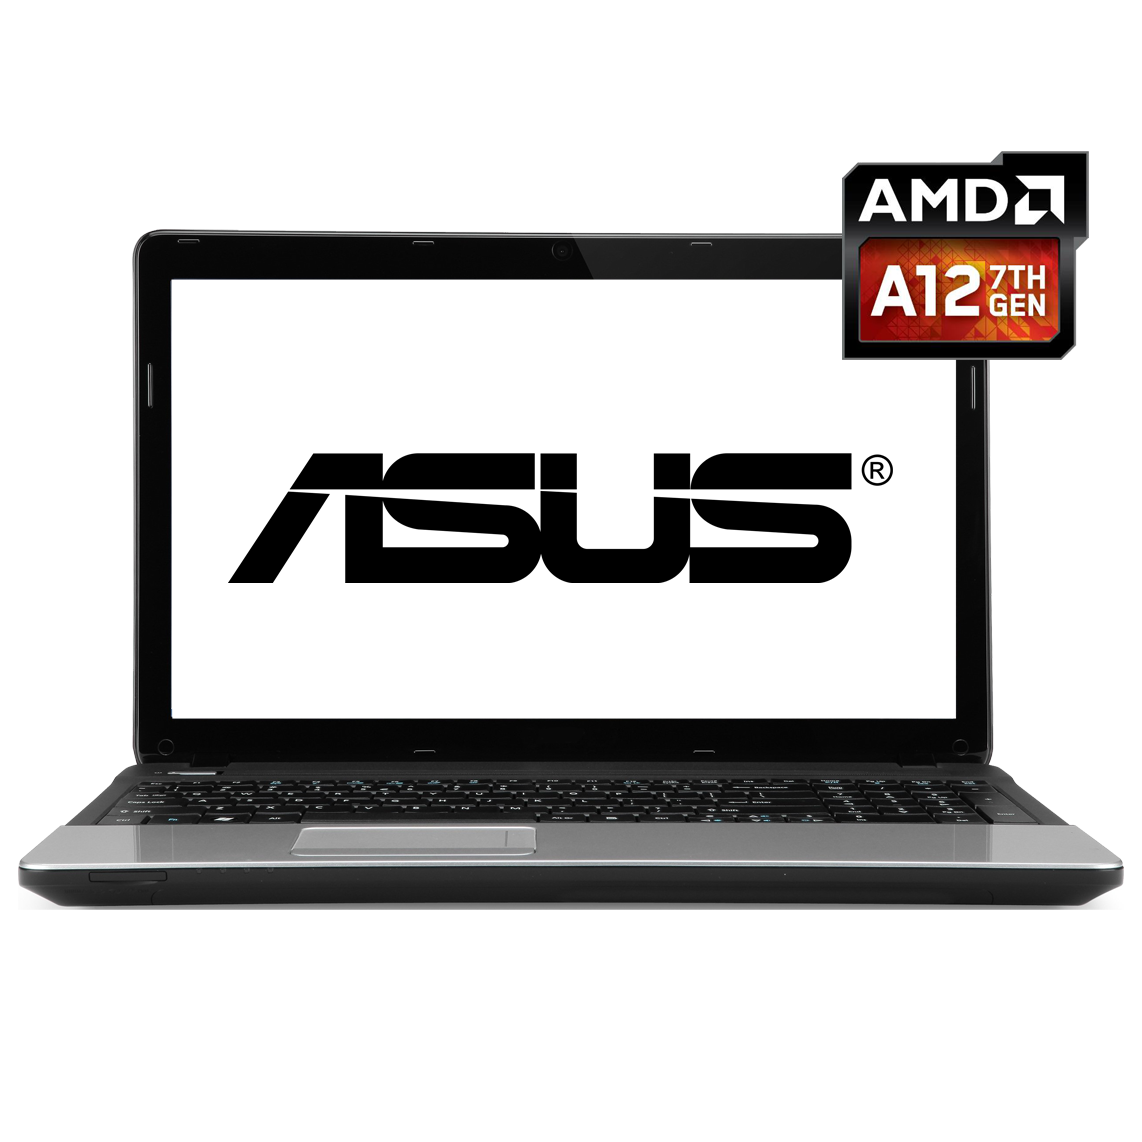 ASUS - 16 inch AMD A12